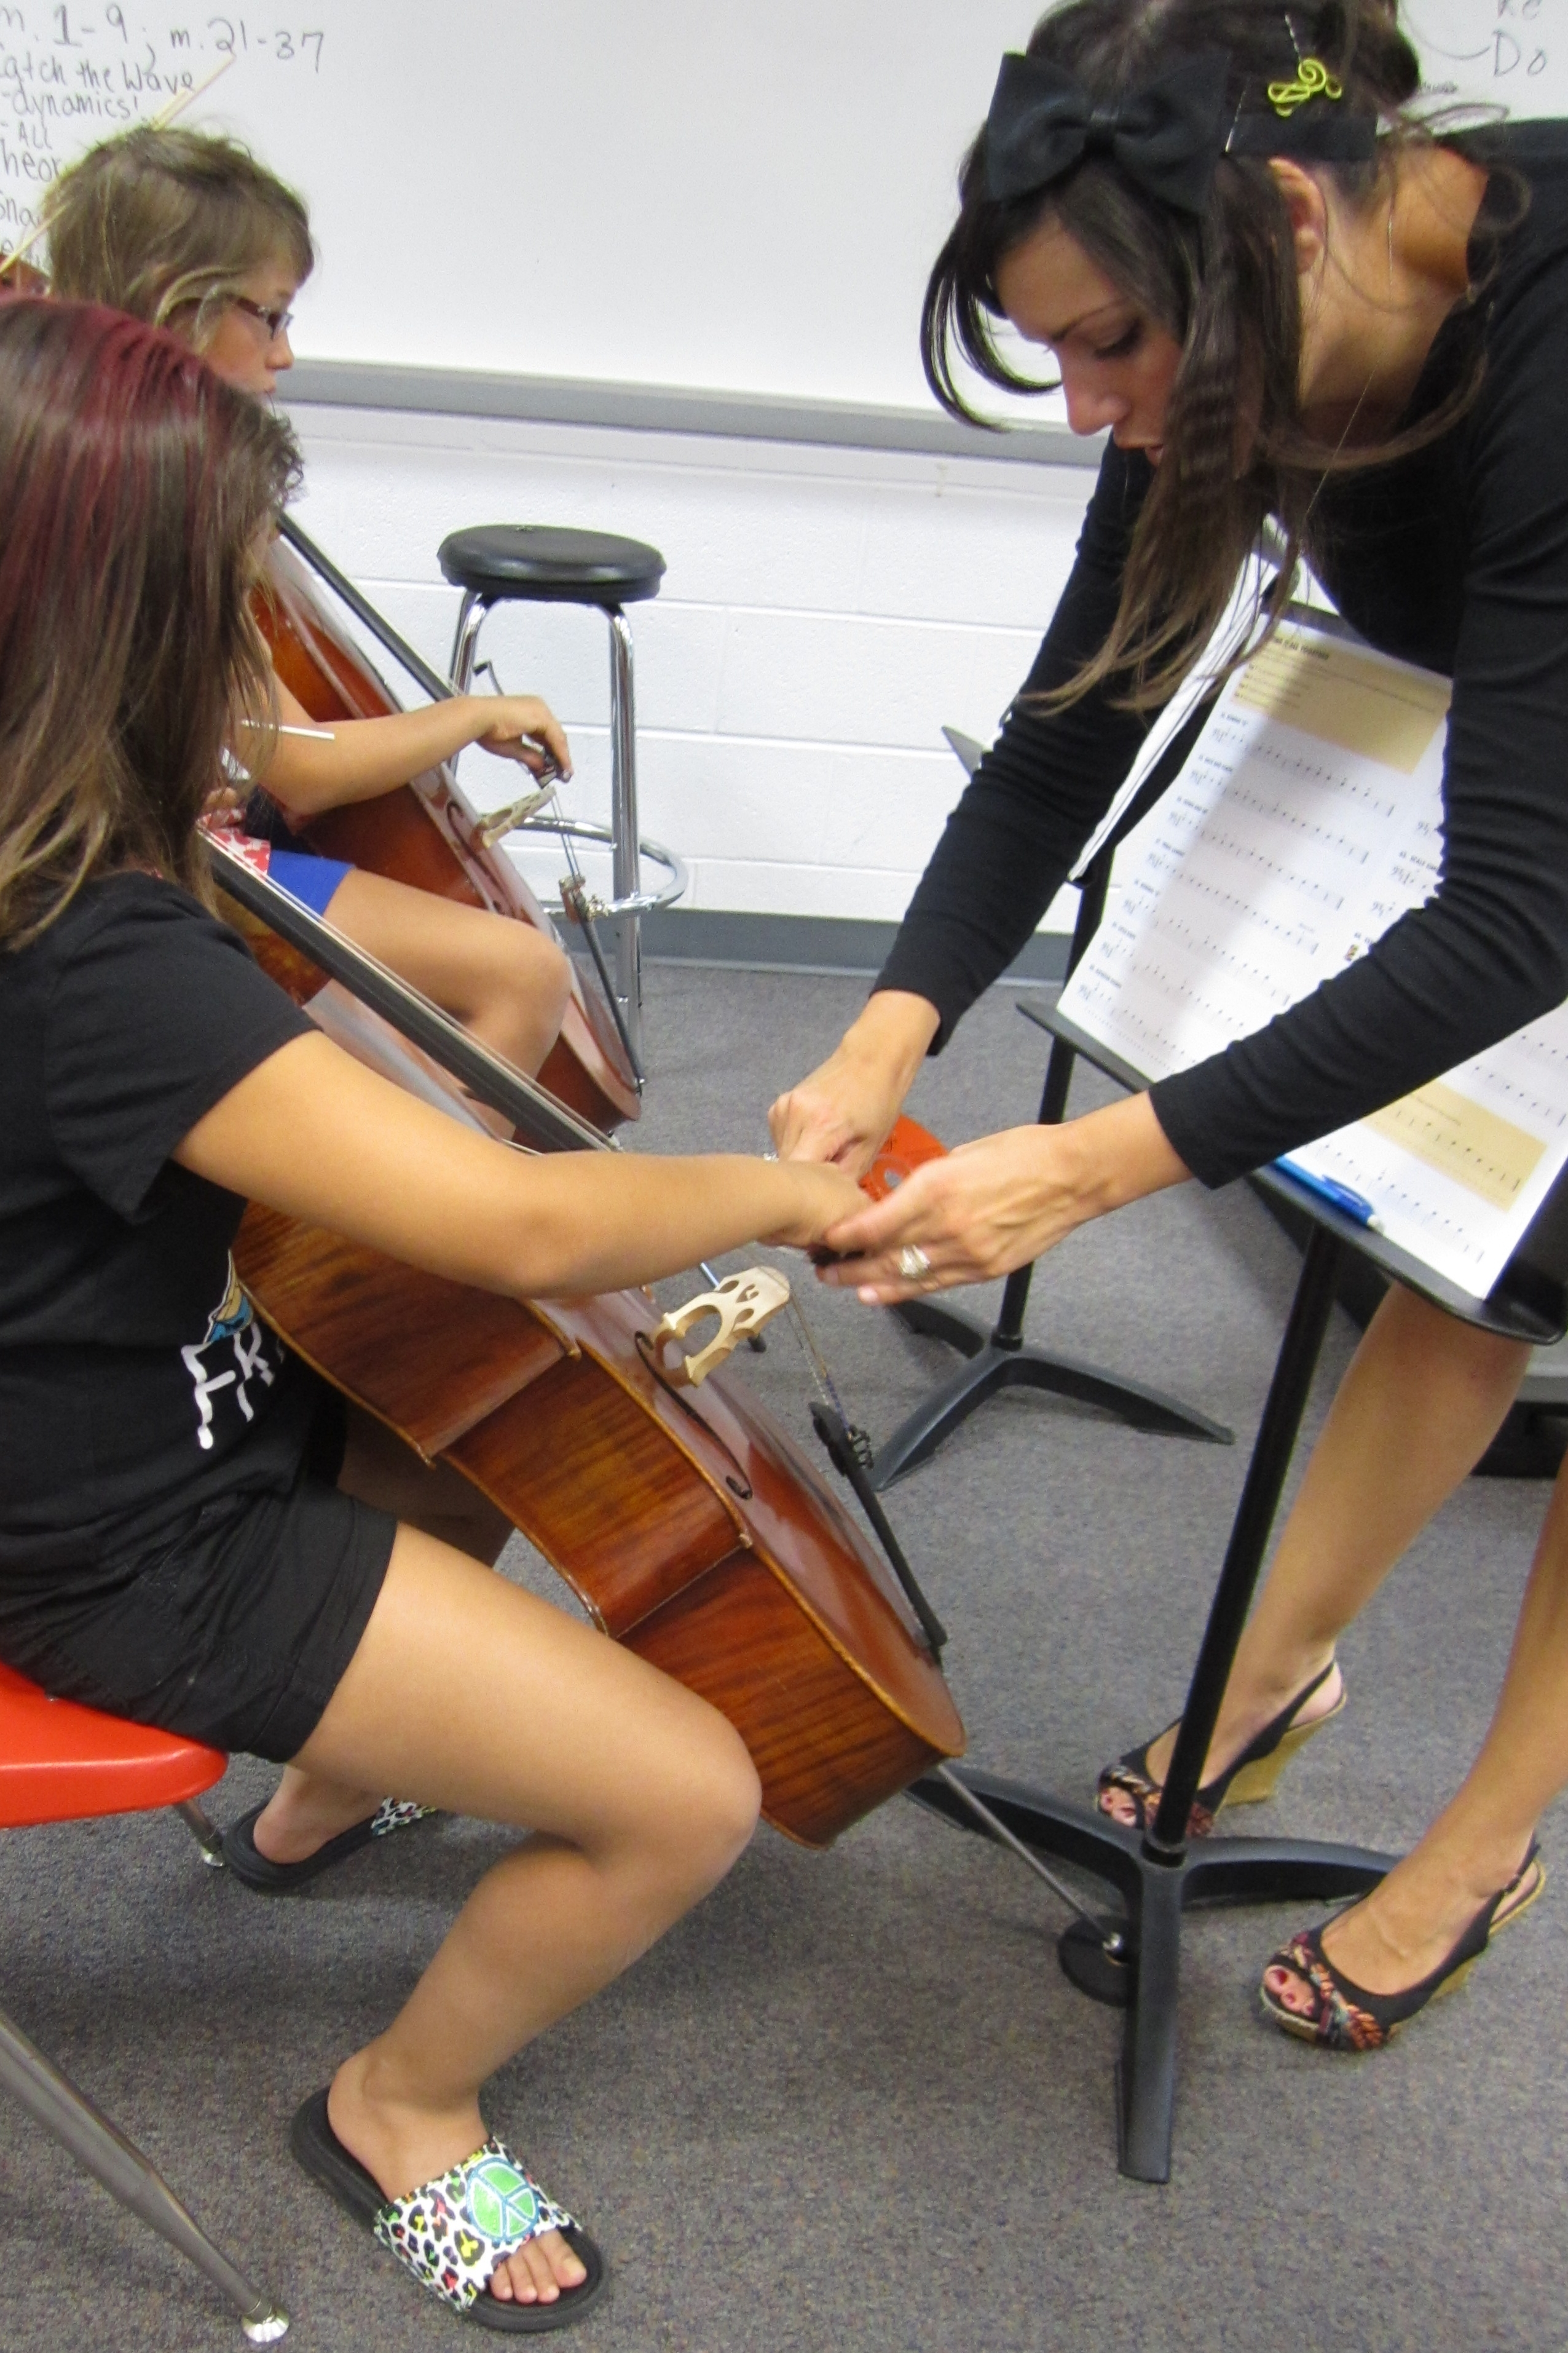 Angela Ammerman instructs a girl one-on-one how to hold a bow to play her instrument.